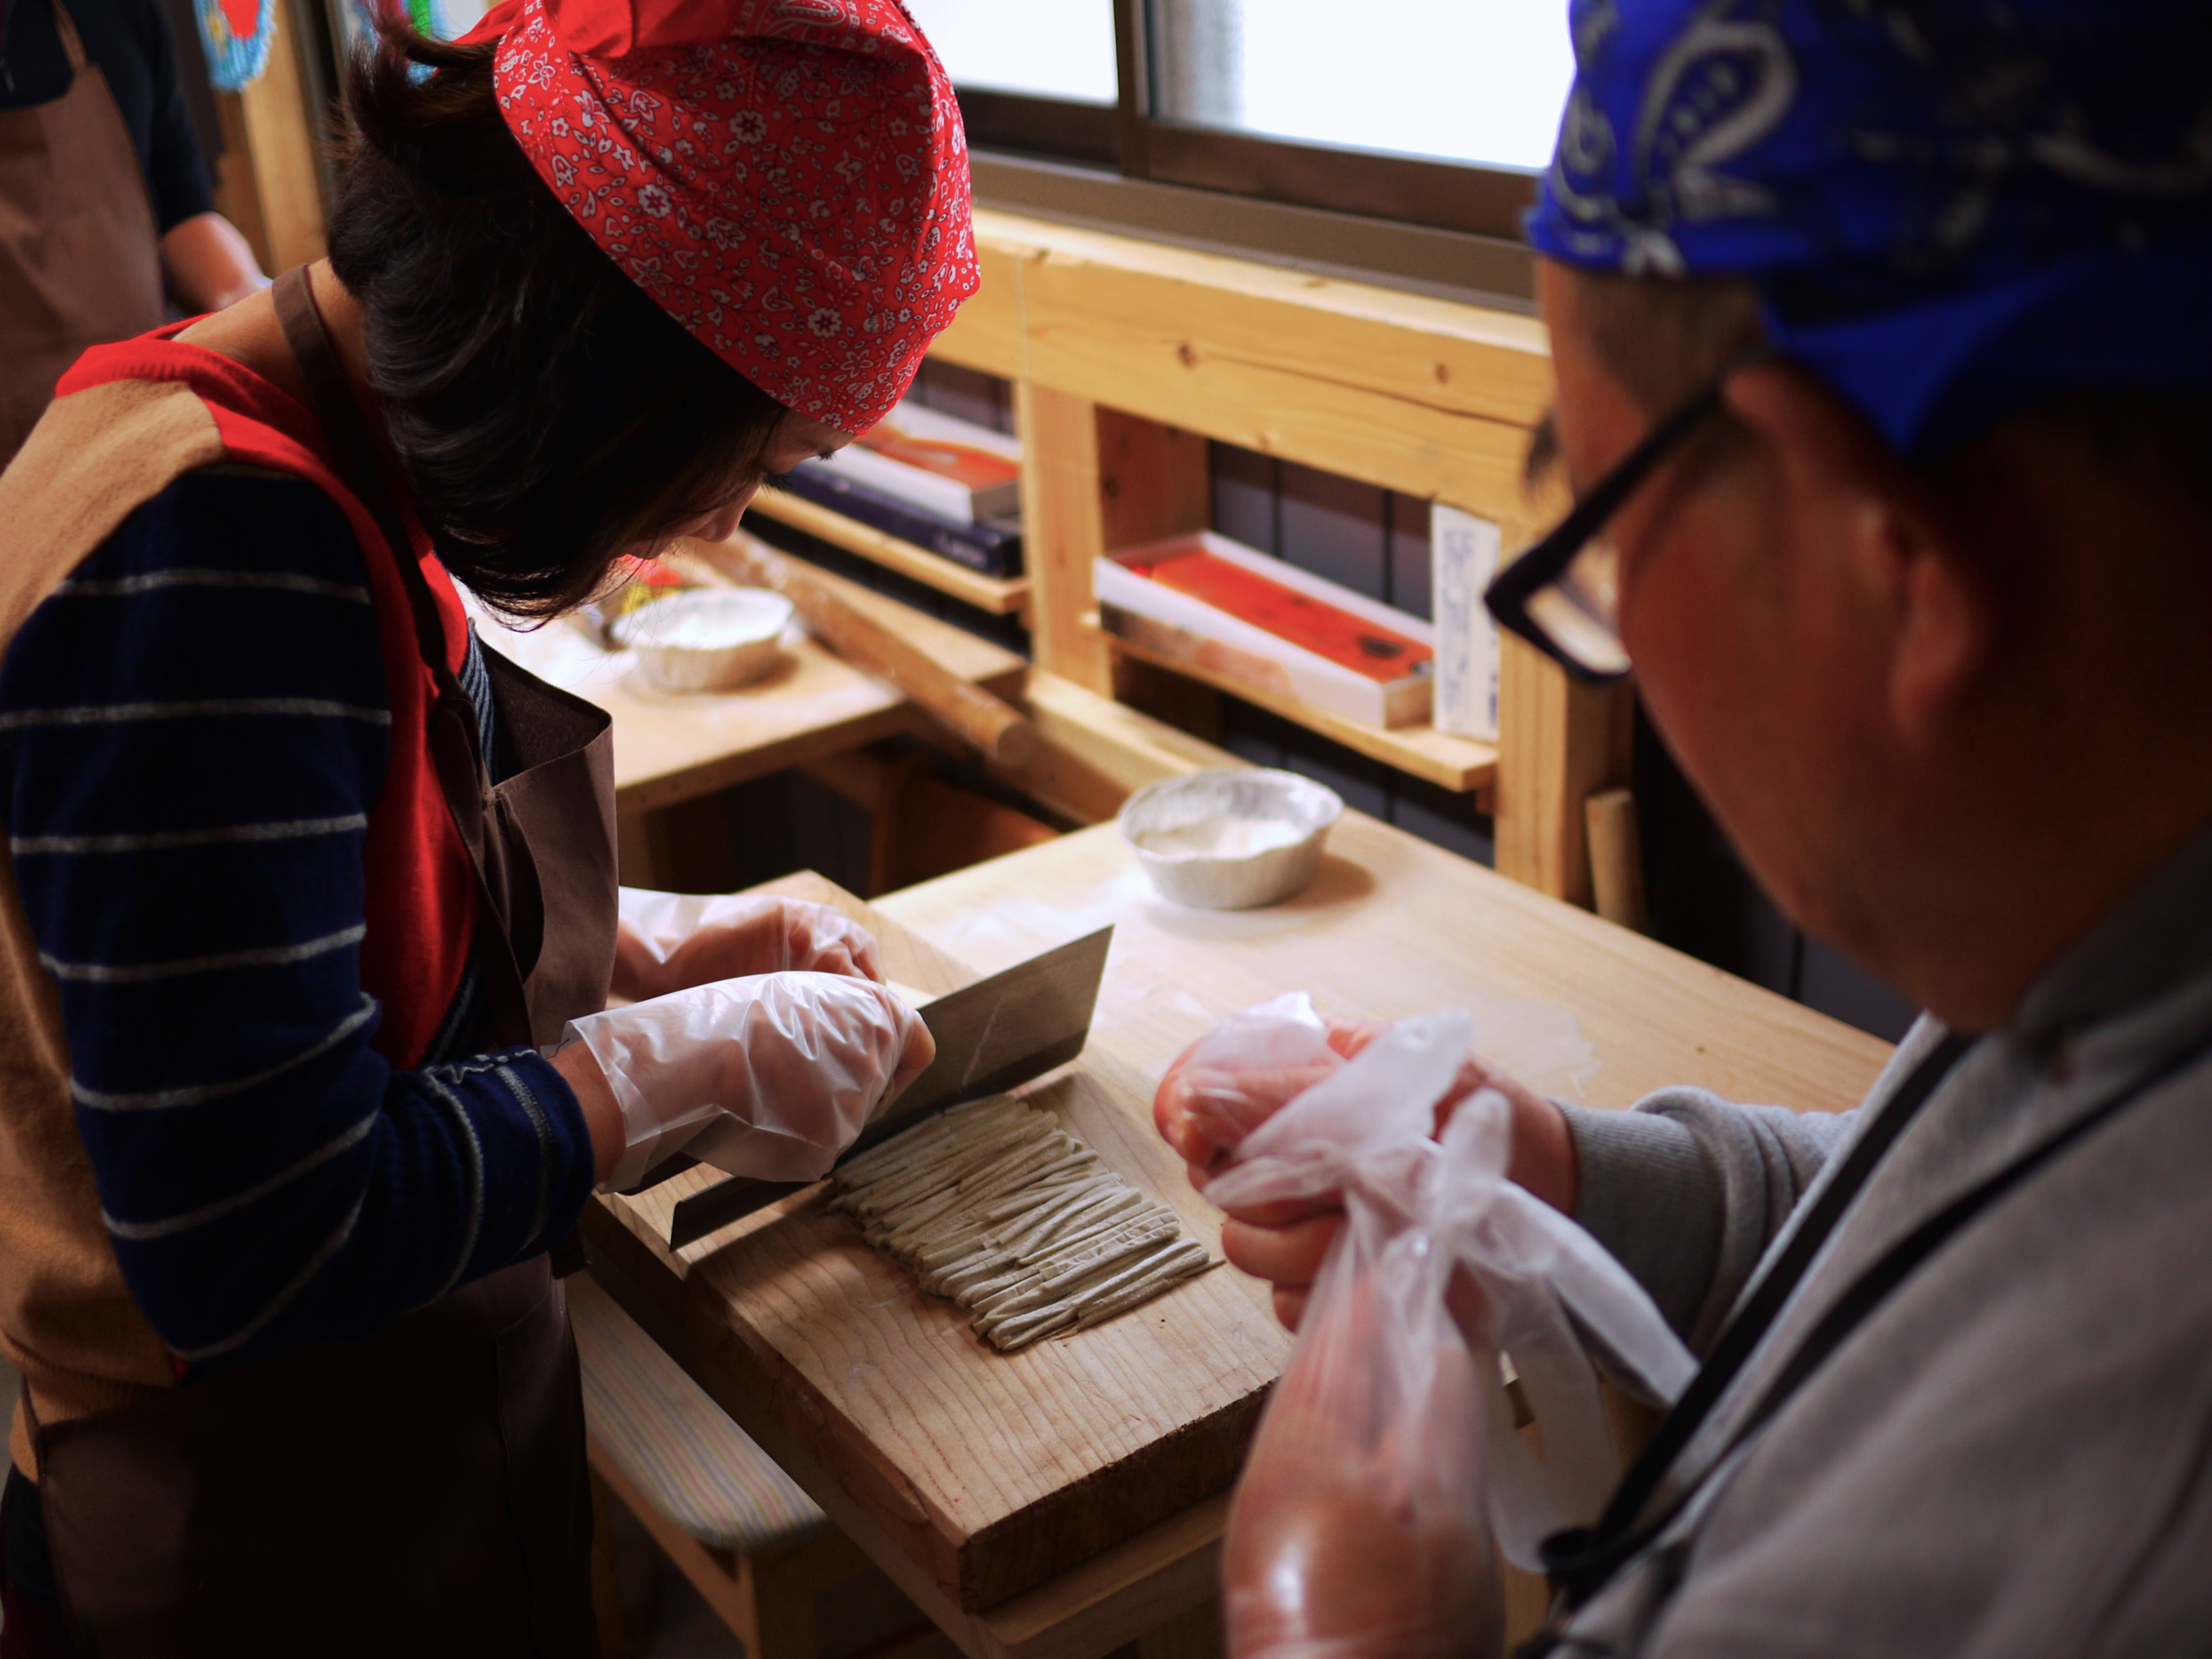 Soba-making at local villager's home